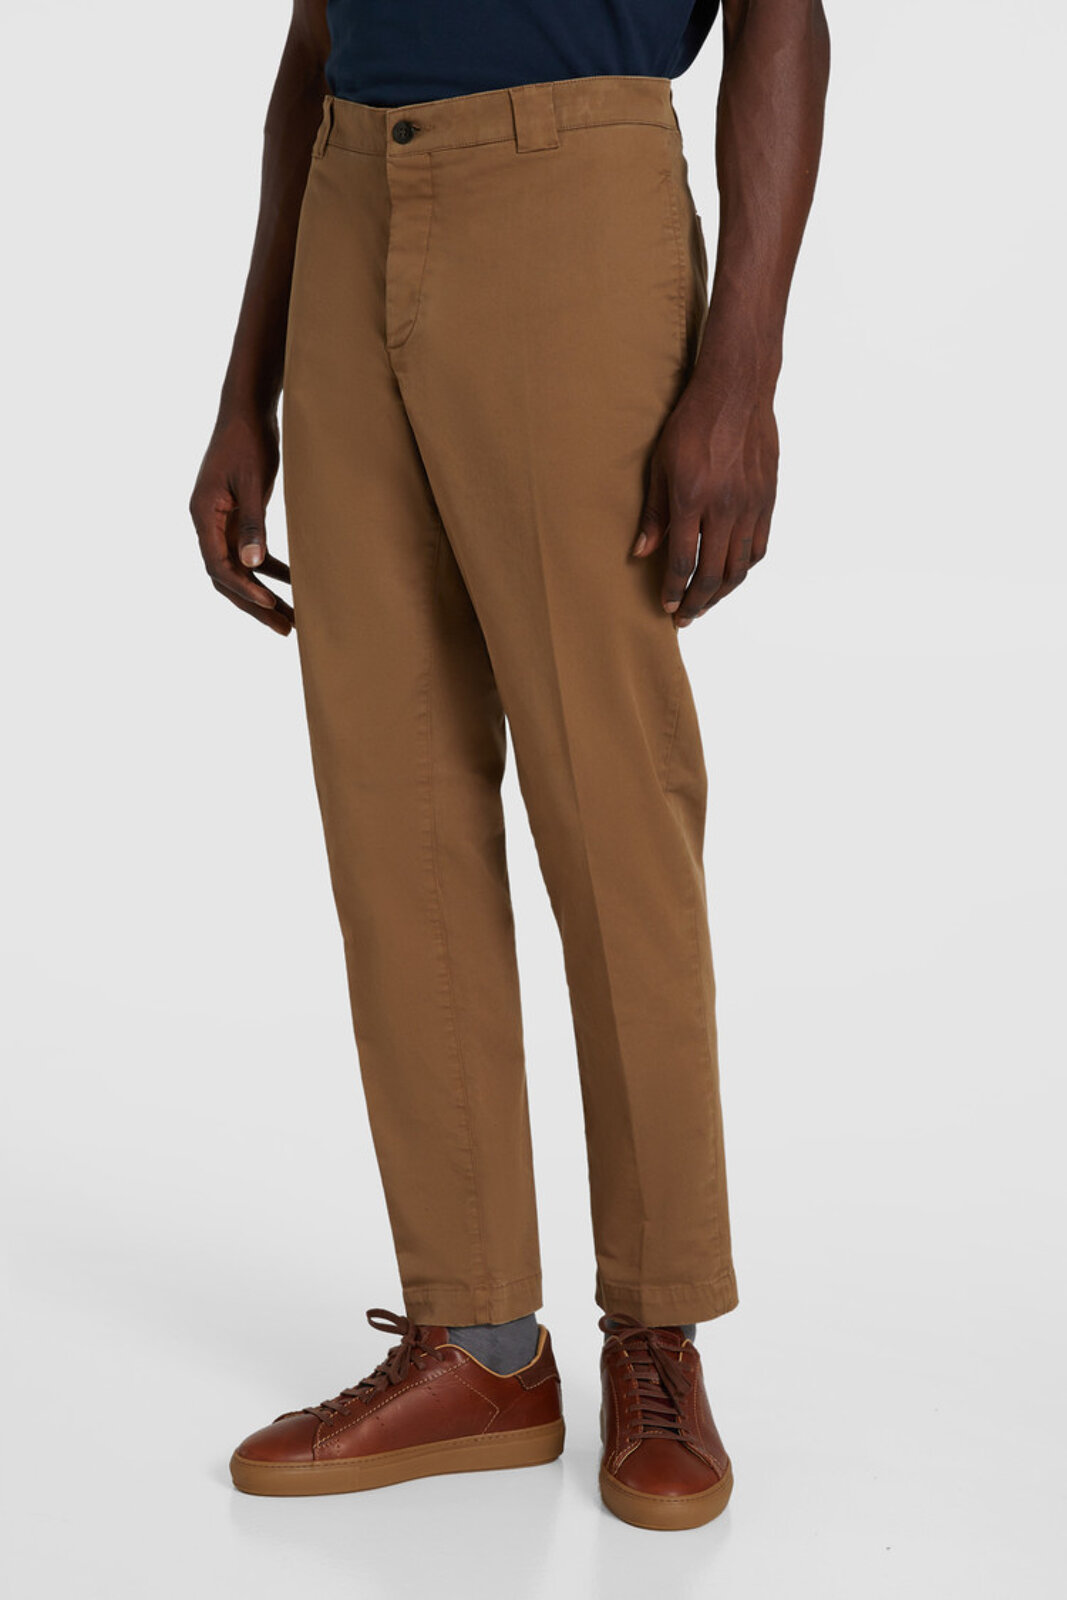 Pantaloni Chino In Cotone Tinto In Capo - Woolrich